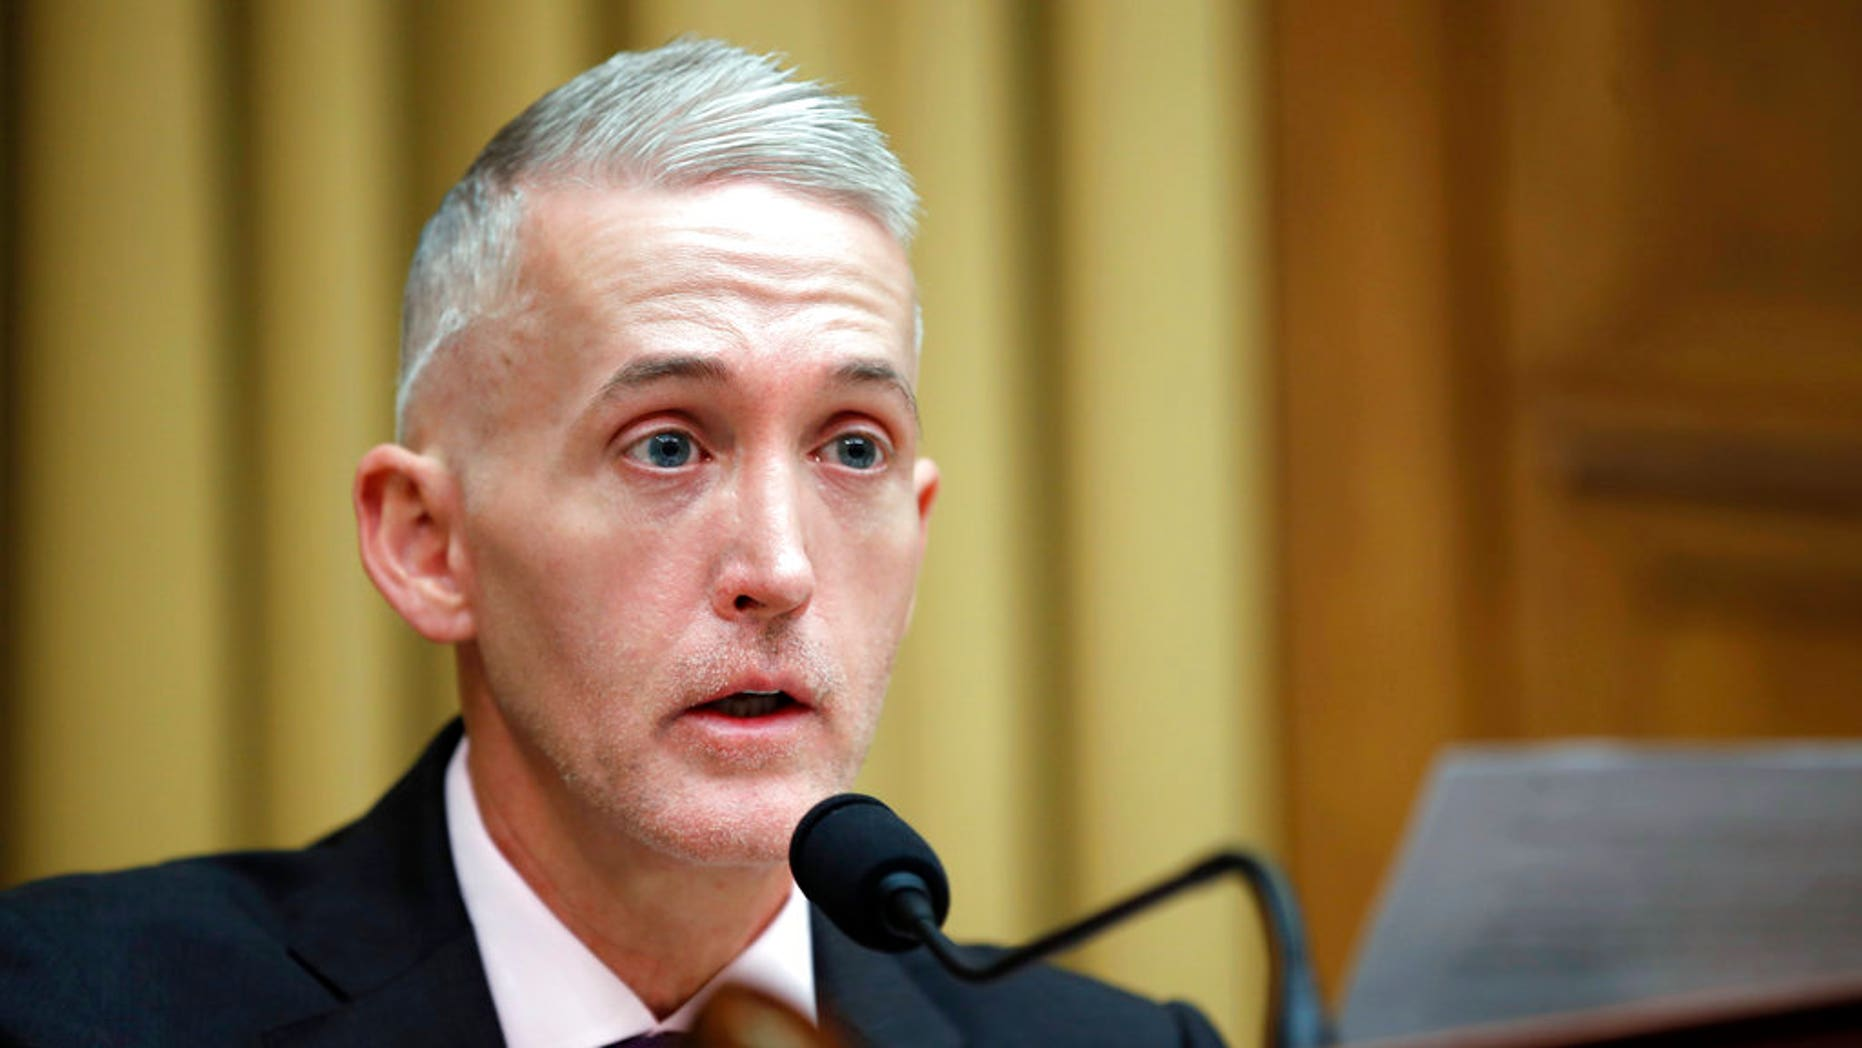 Rep. Trey Gowdy, R-S.C., has been tapped to lead the House Oversight panel.